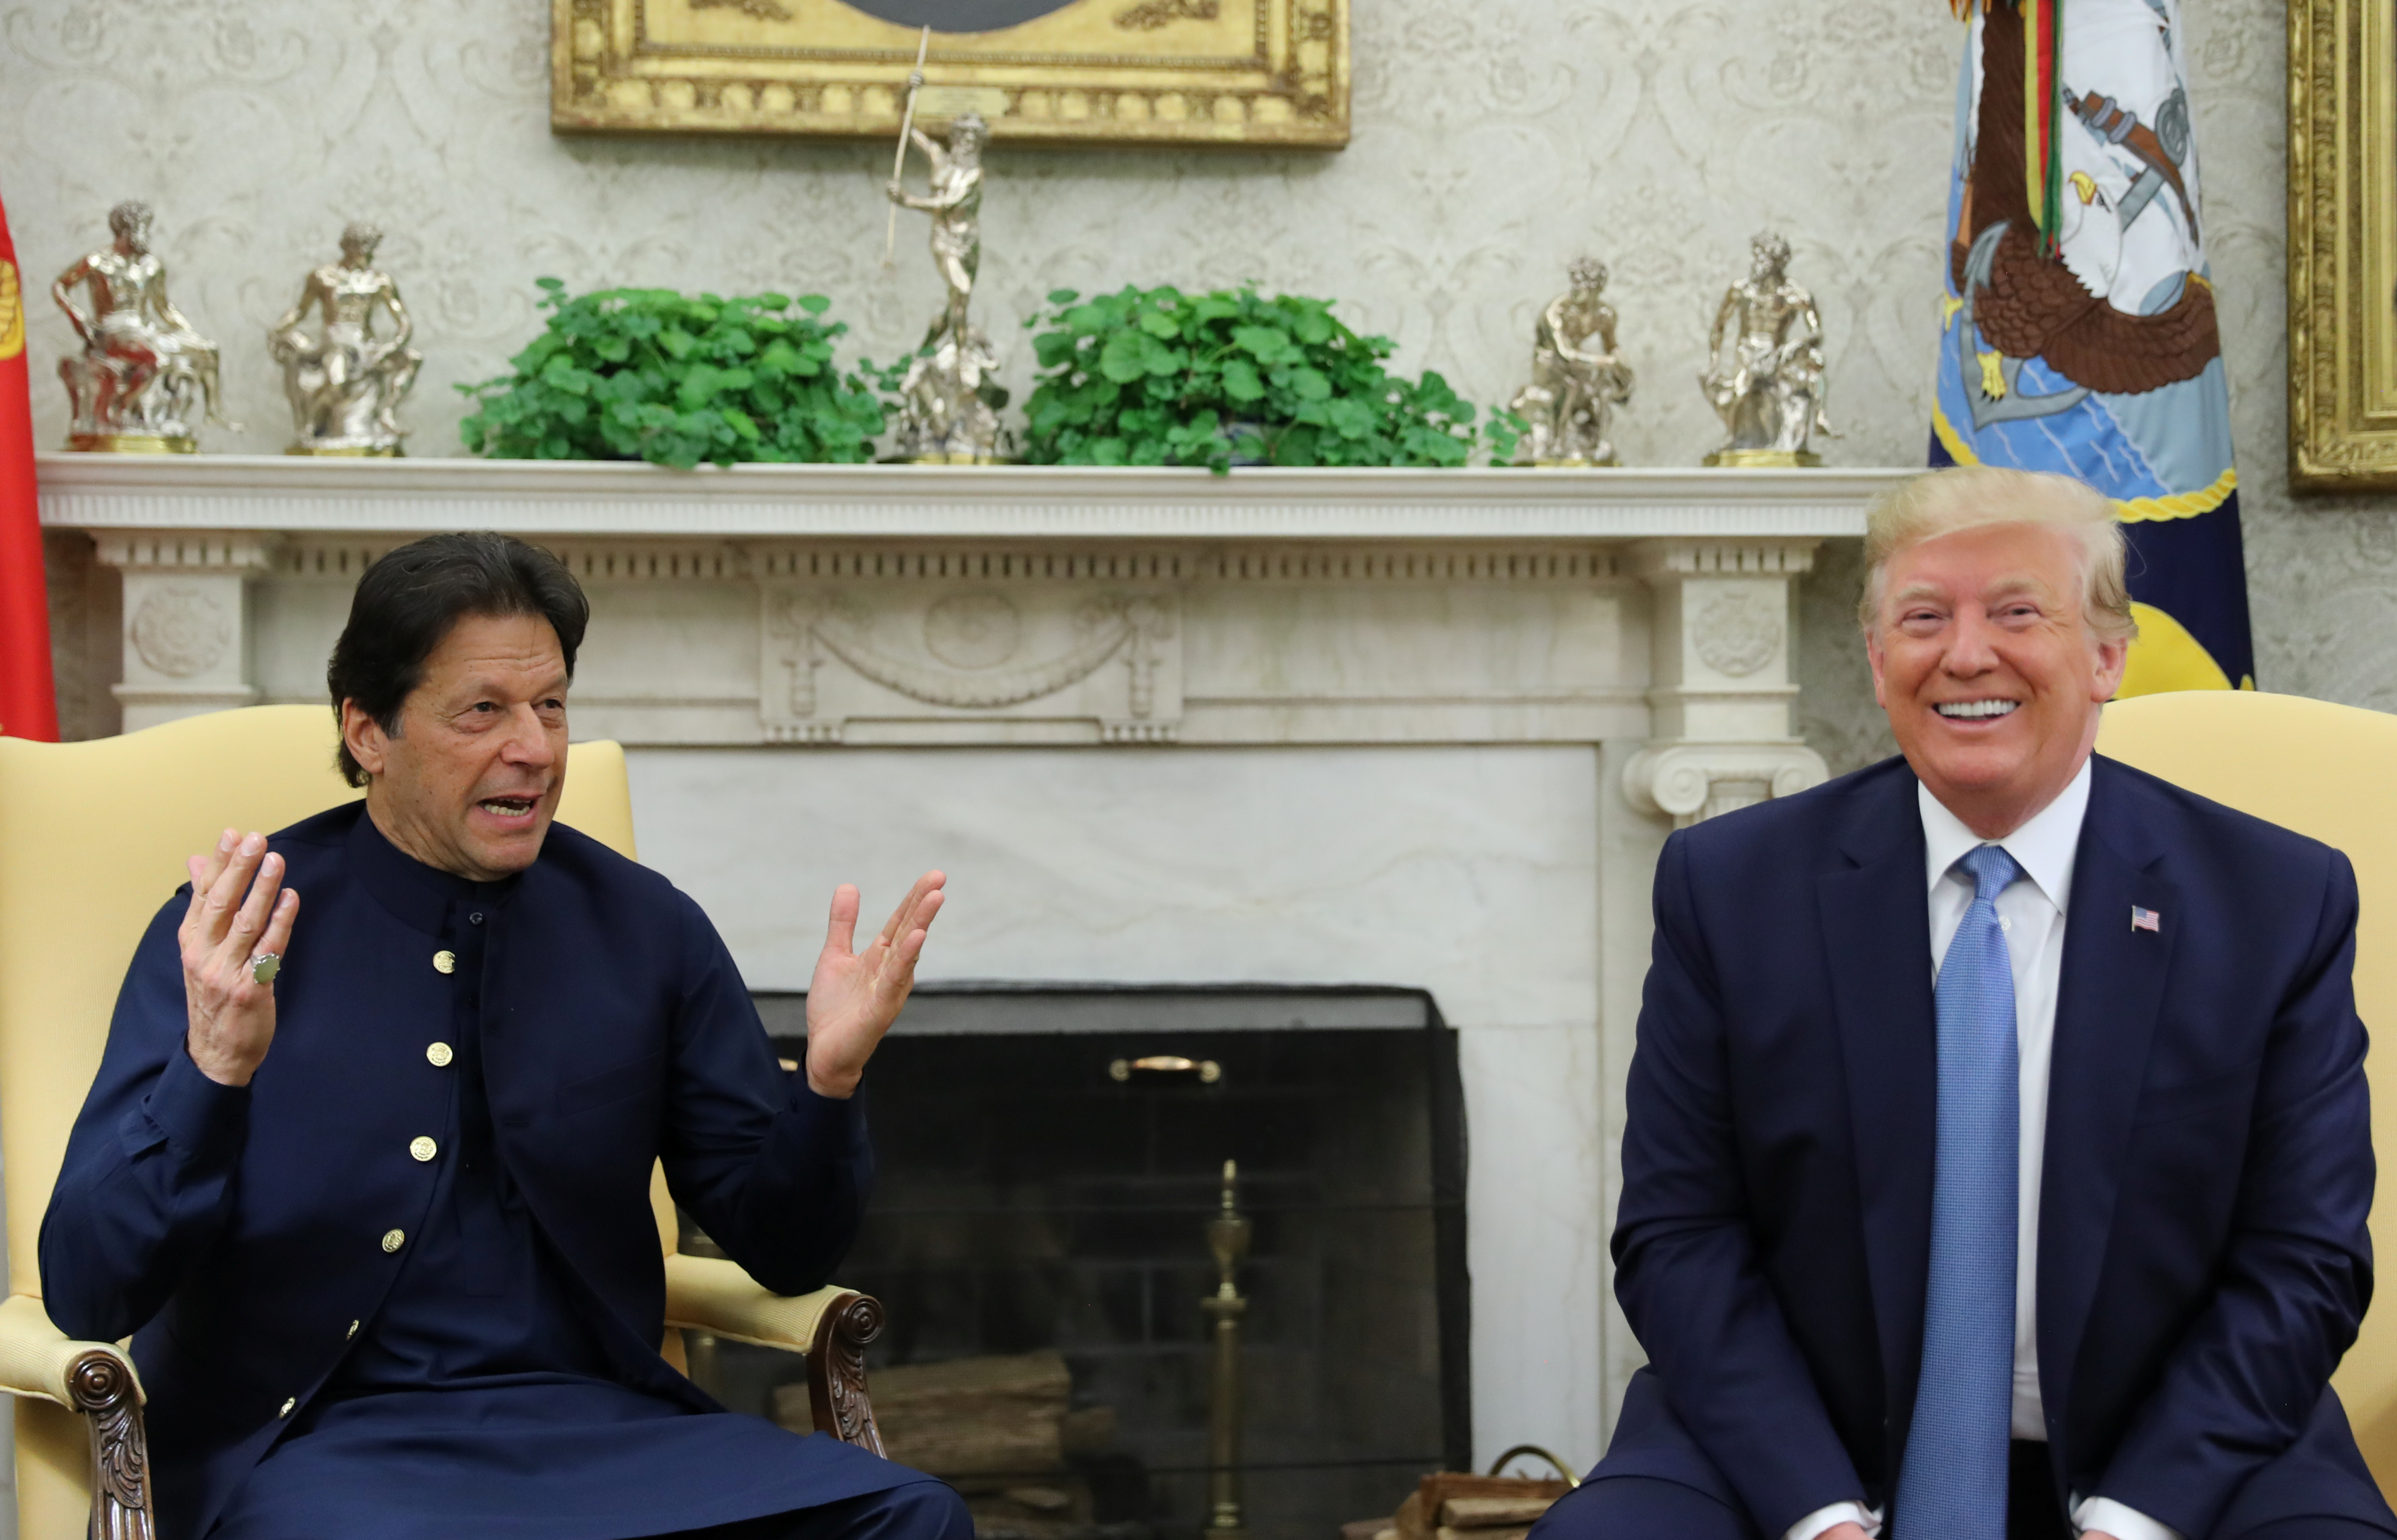 Pakistan's prime minister Imran Khan meets with US president Donald Trump REUTERS/Jonathan Ernst